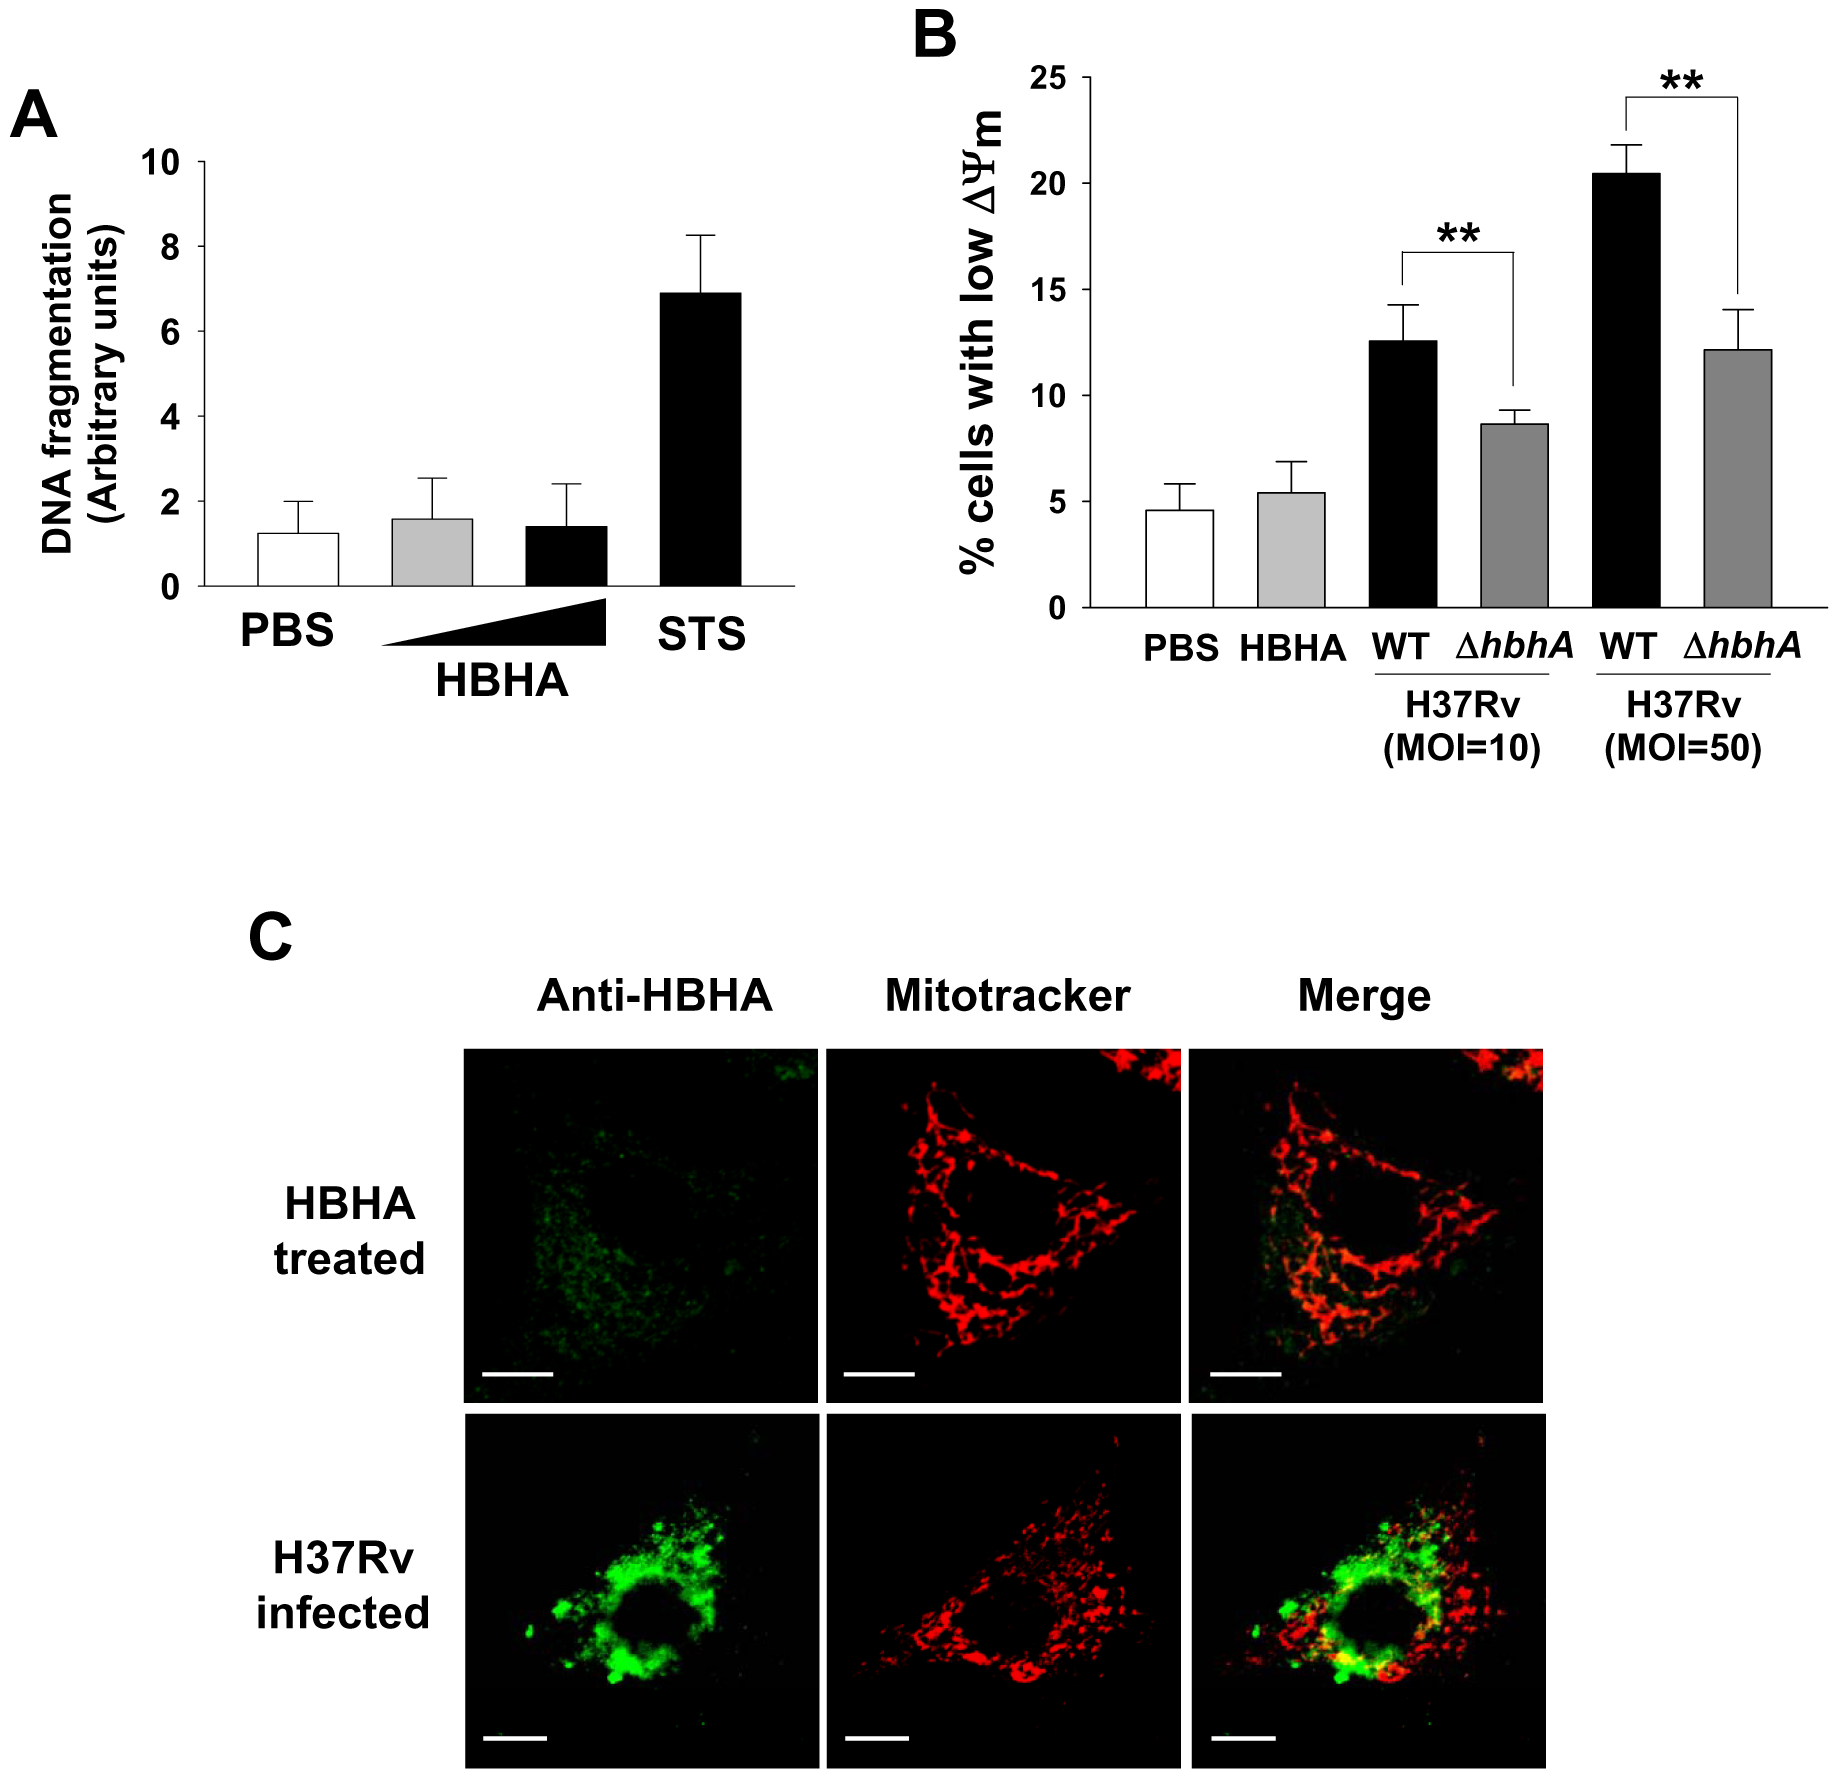 HBHA does not affect the viability of A549 cells.